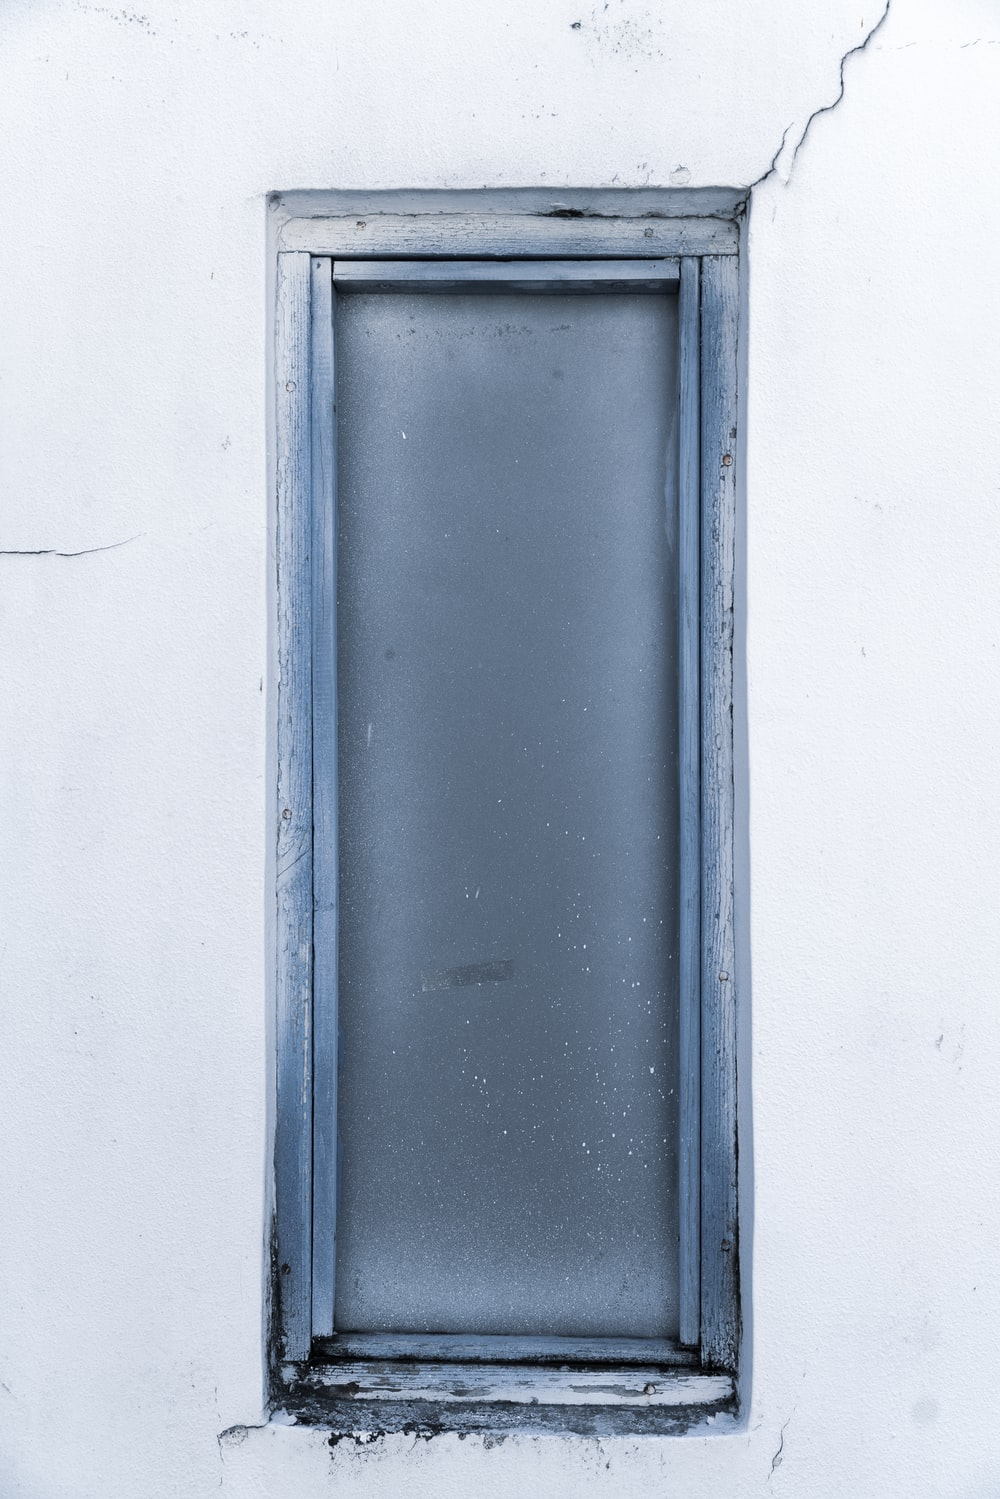 blue wooden window frame on white wall